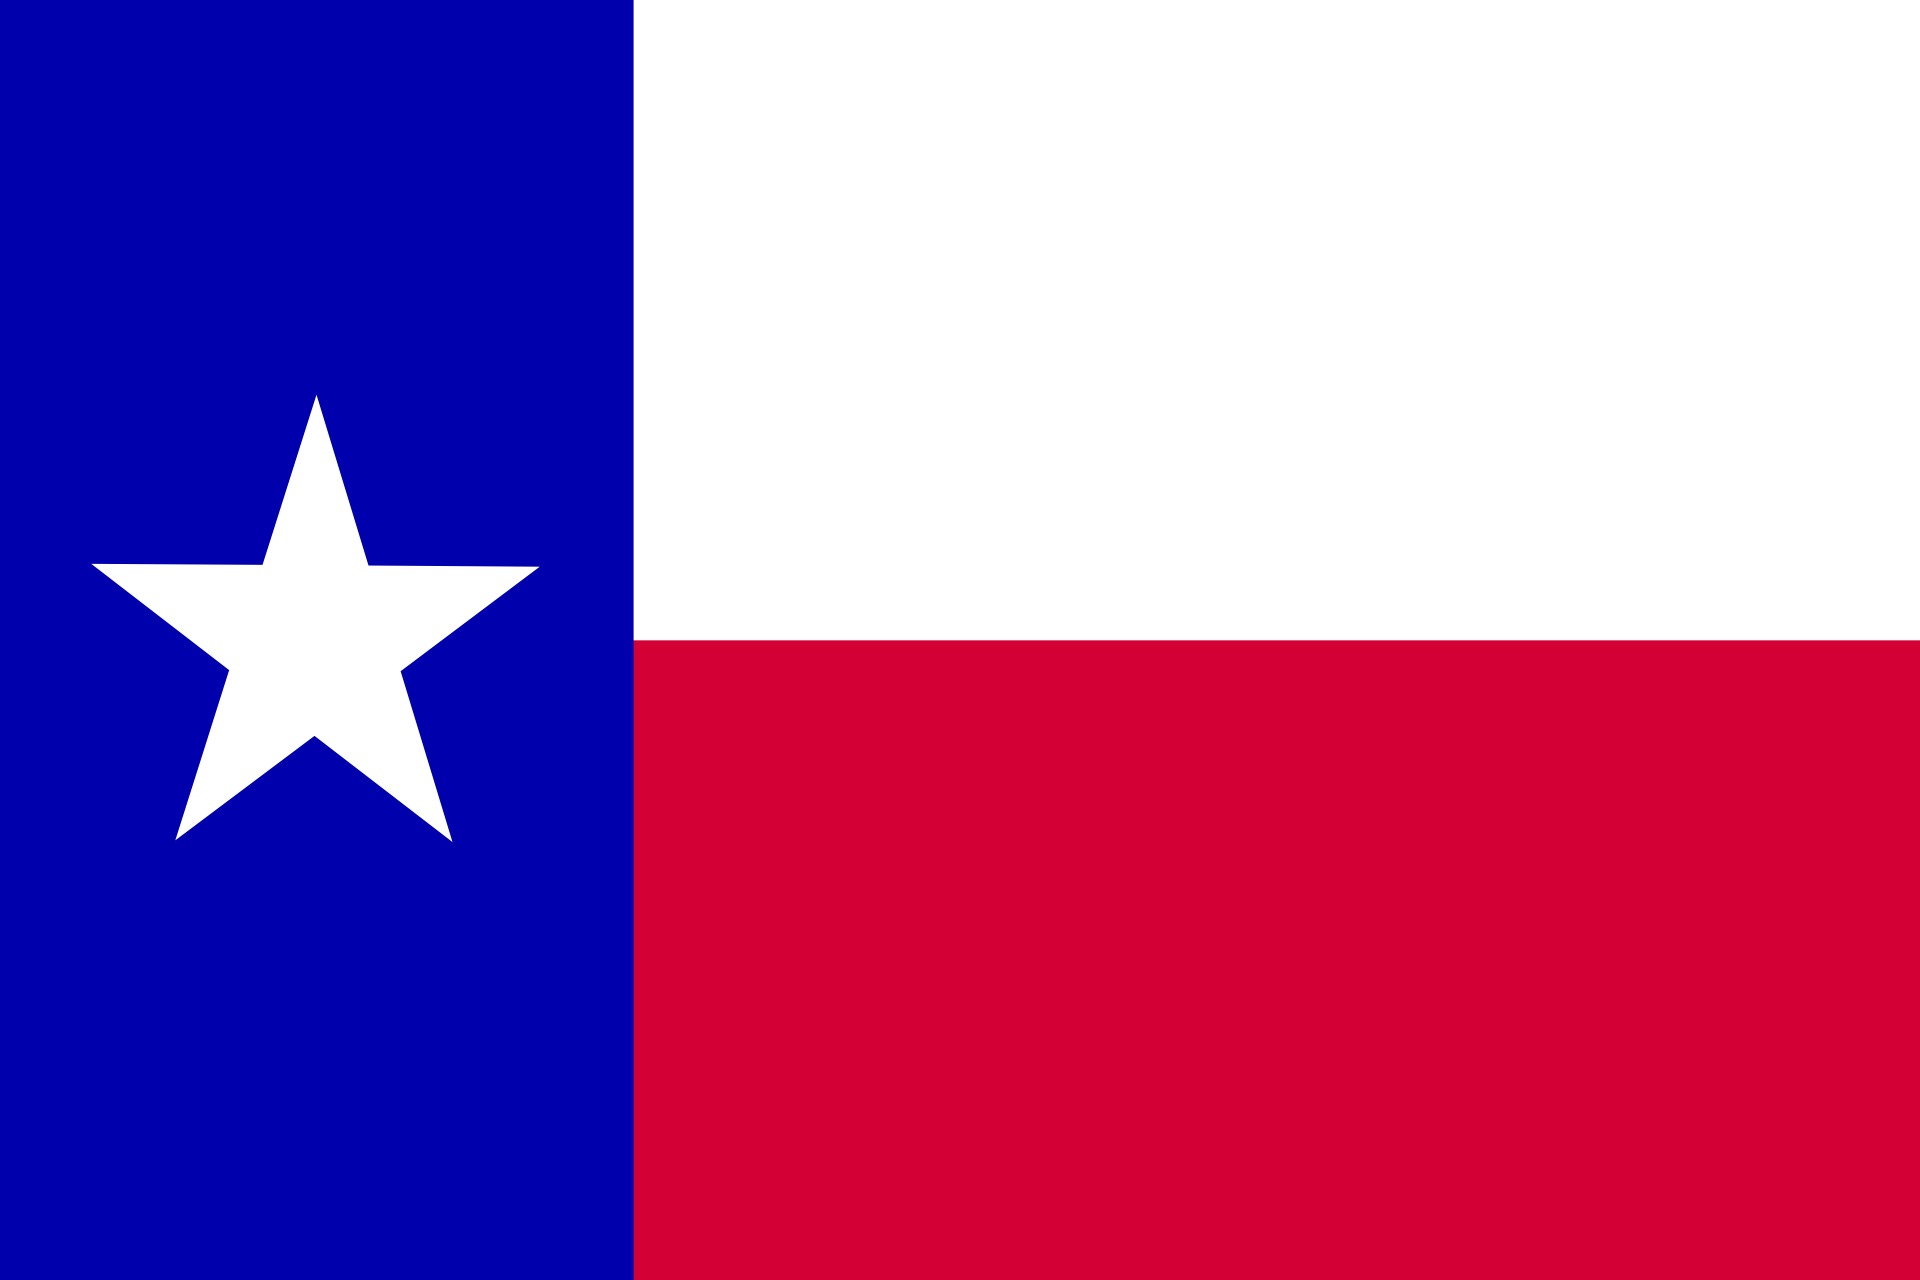 Valley NG retires 1 069 MW of gas fired steam capacity in Texas